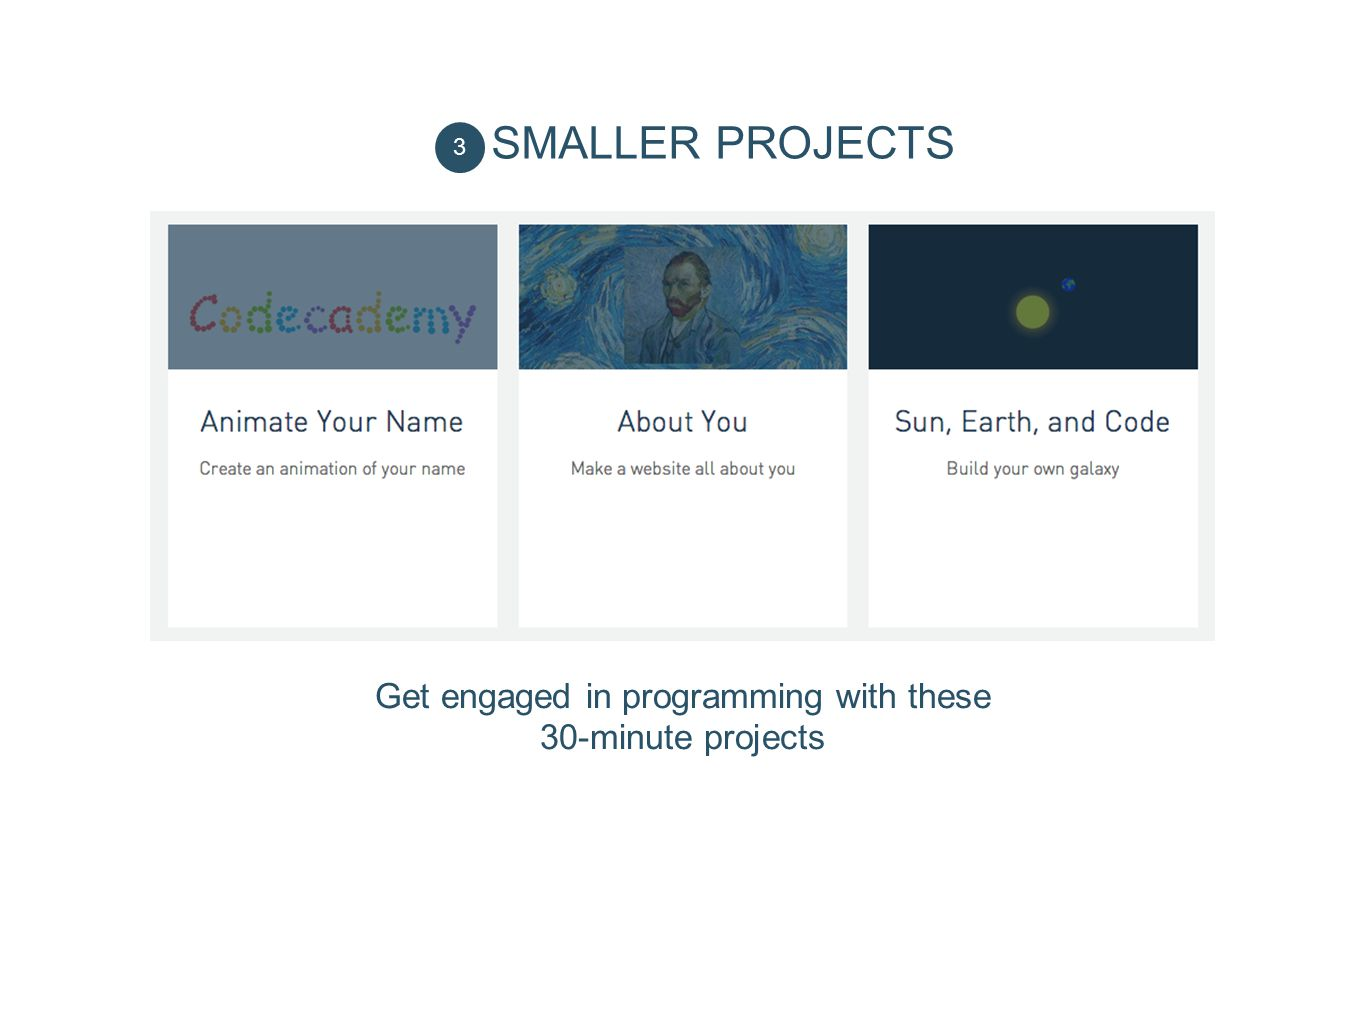 Get engaged in programming with these 30-minute projects